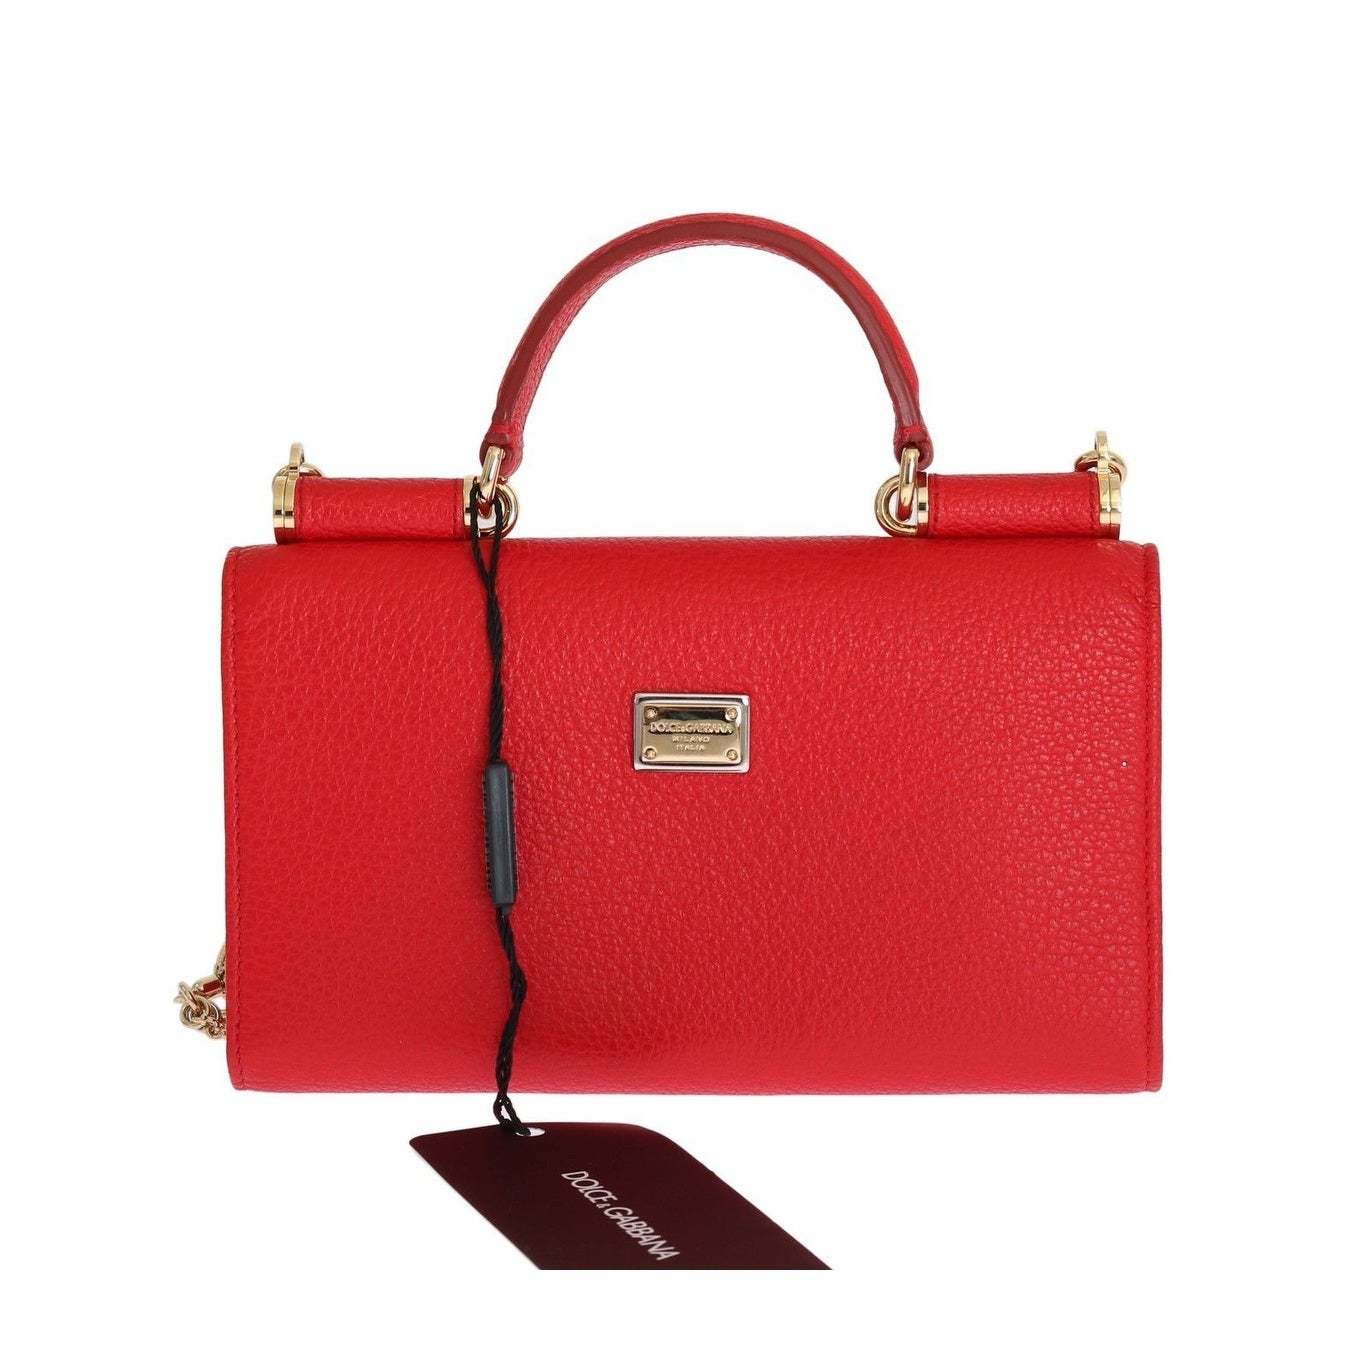 3b5dbf49cf14 Shop Dolce   Gabbana Purse VON Red Leather Crystal Carretto POM POM - One  Size - Free Shipping Today - Overstock - 21178090